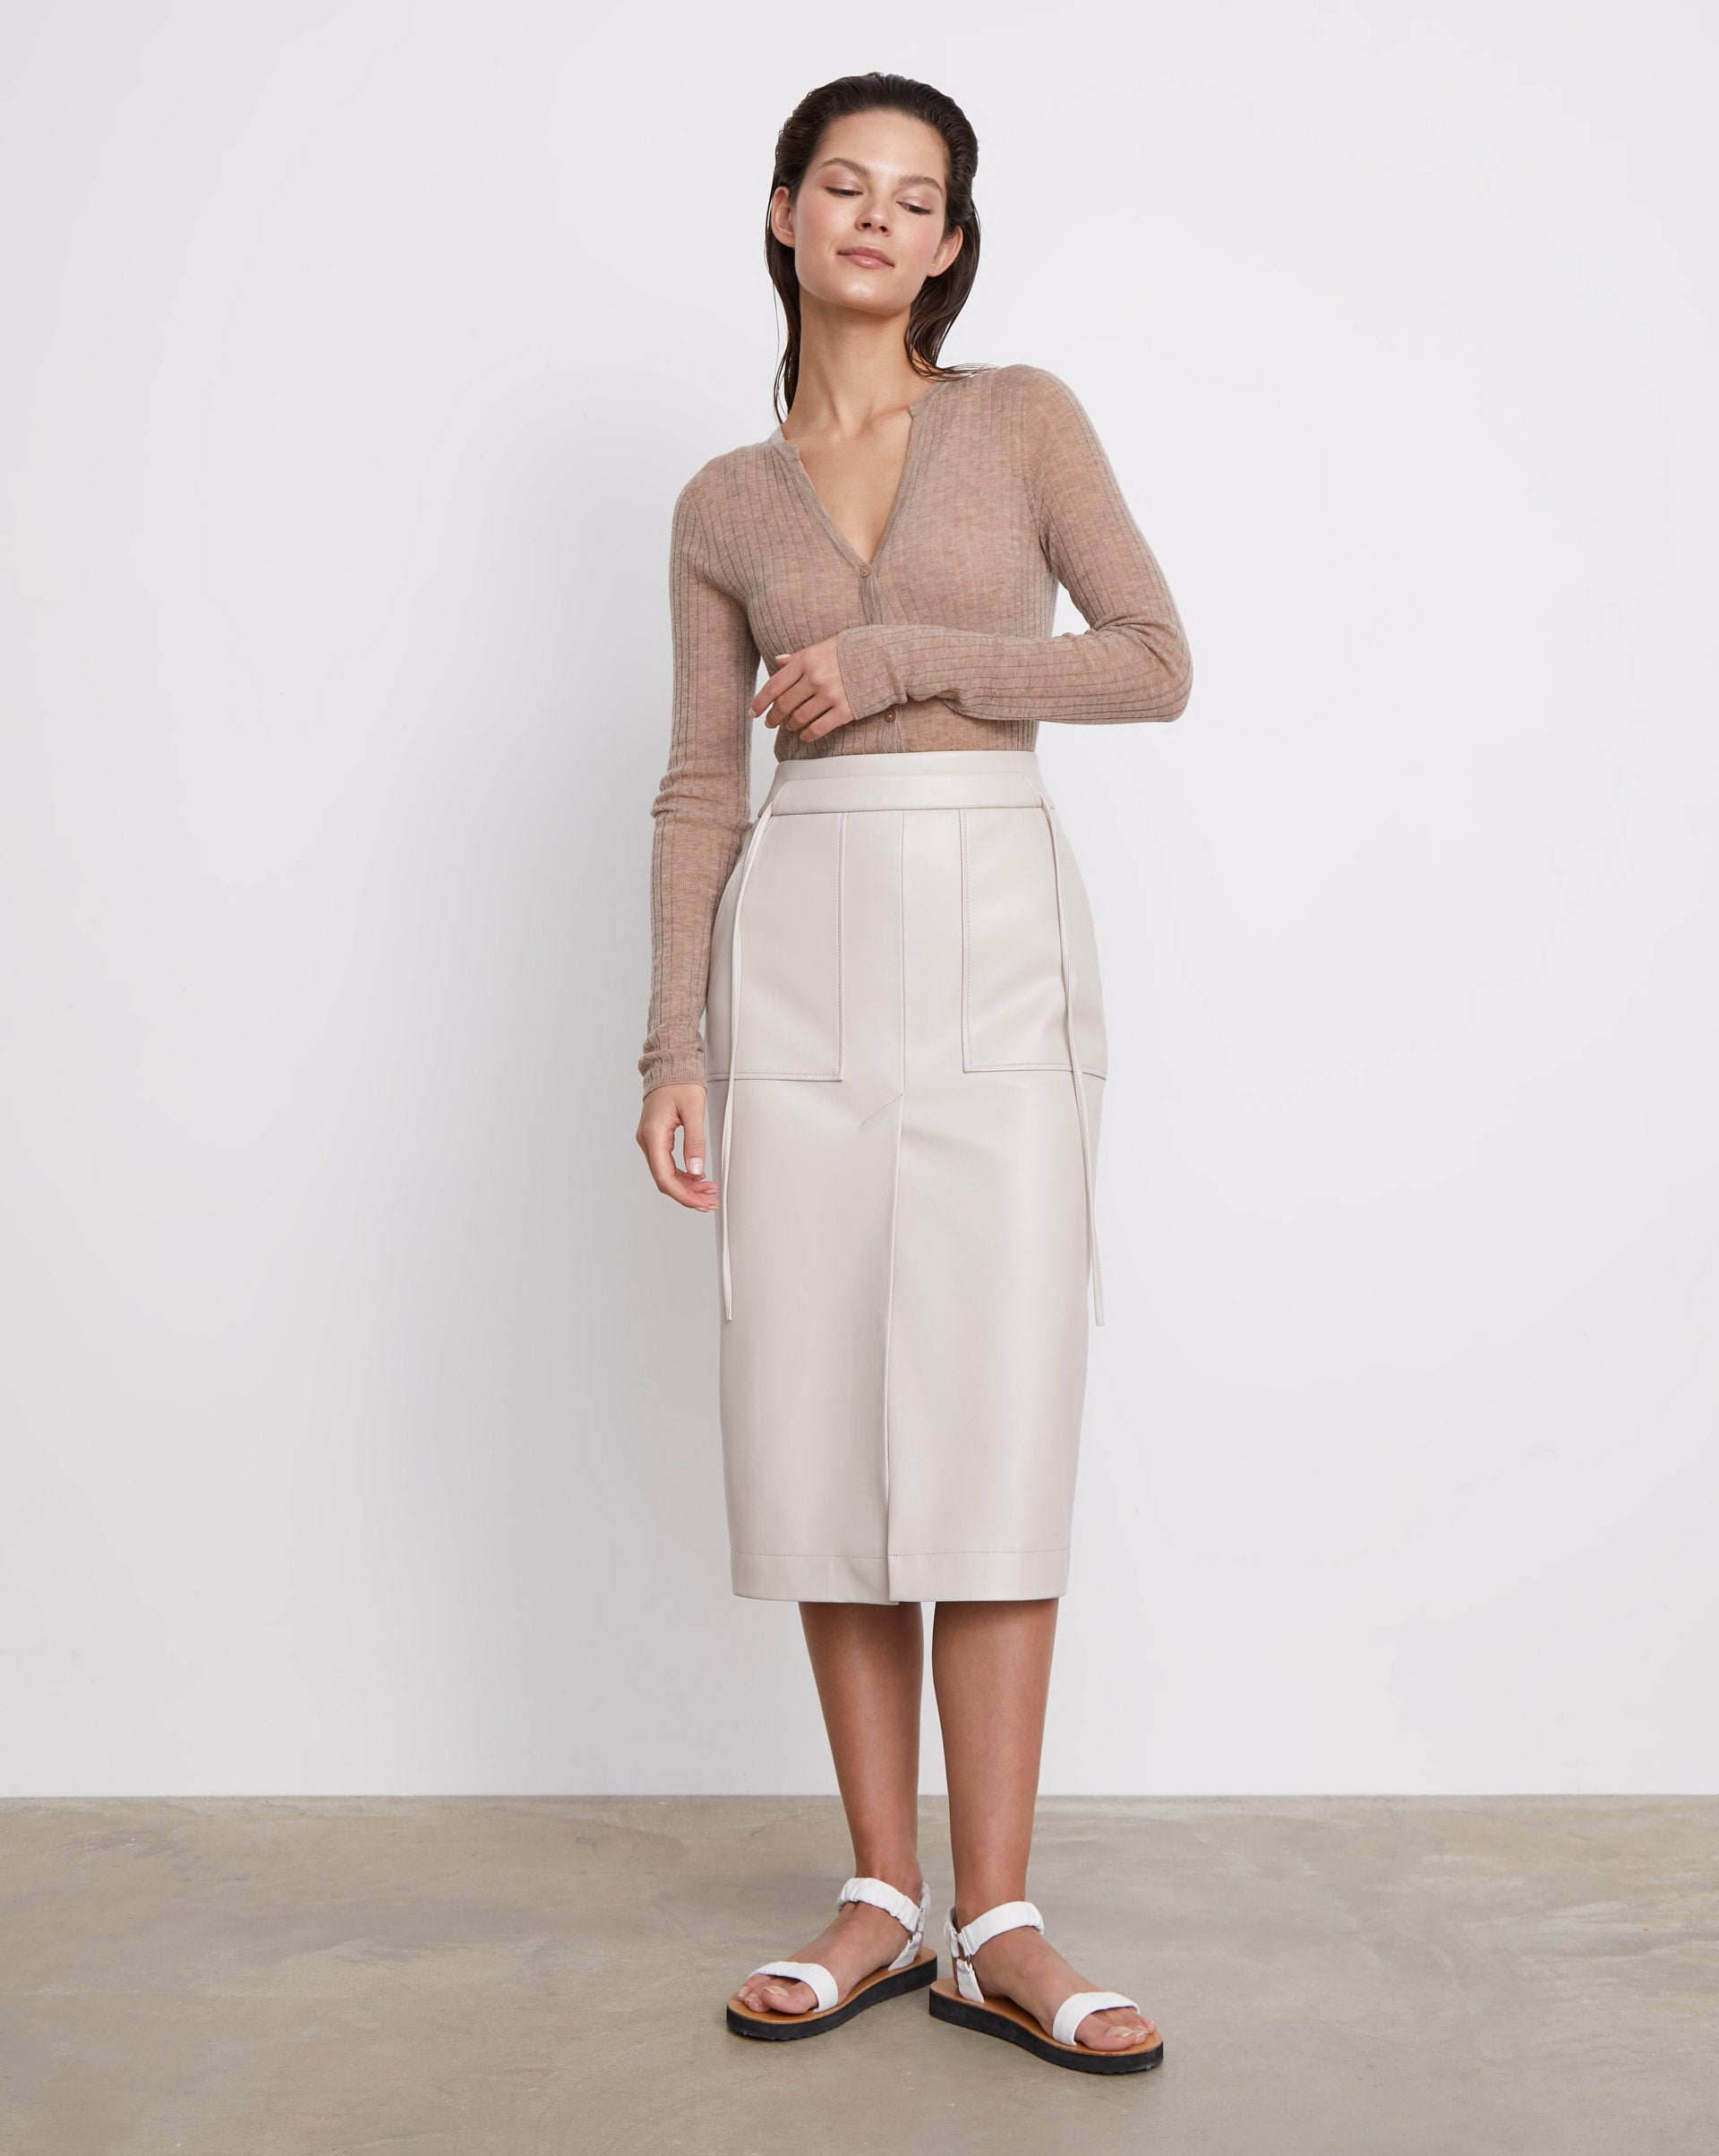 Faux-leather patch pocket midi skirt - 12 STOREEZ